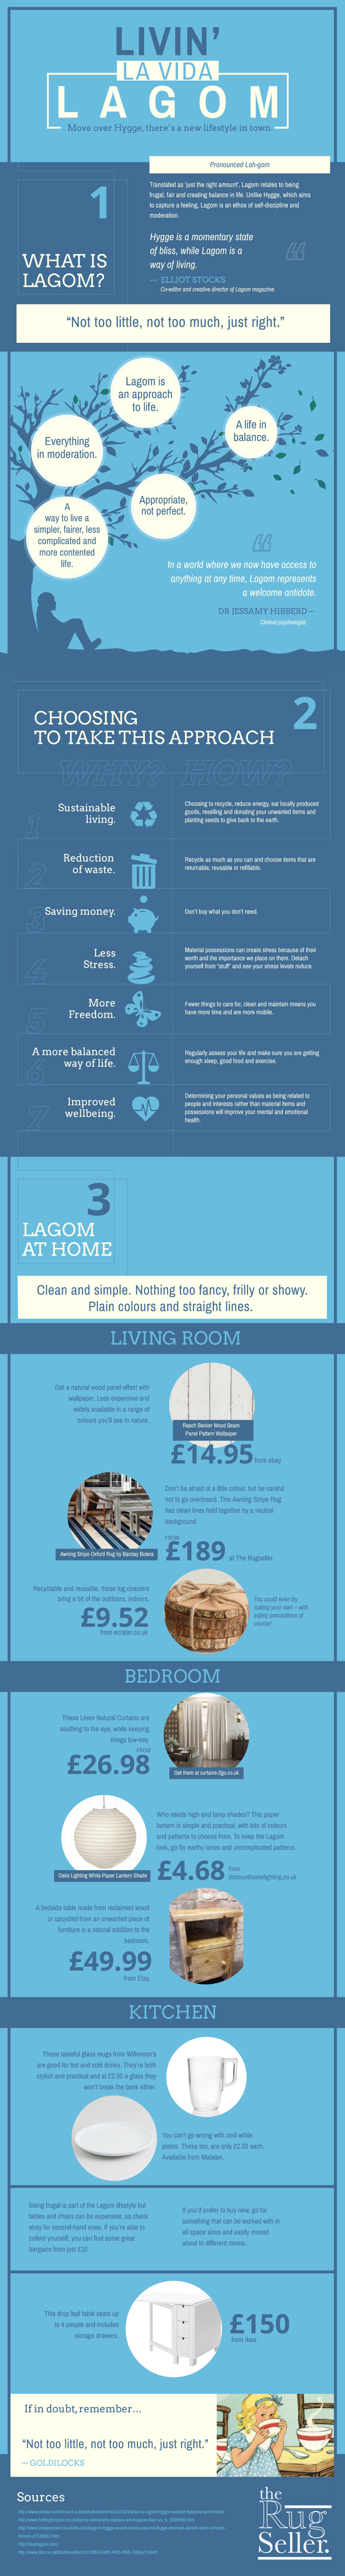 Live the Lagom Lifestyle [Infographic] | ecogreenlove